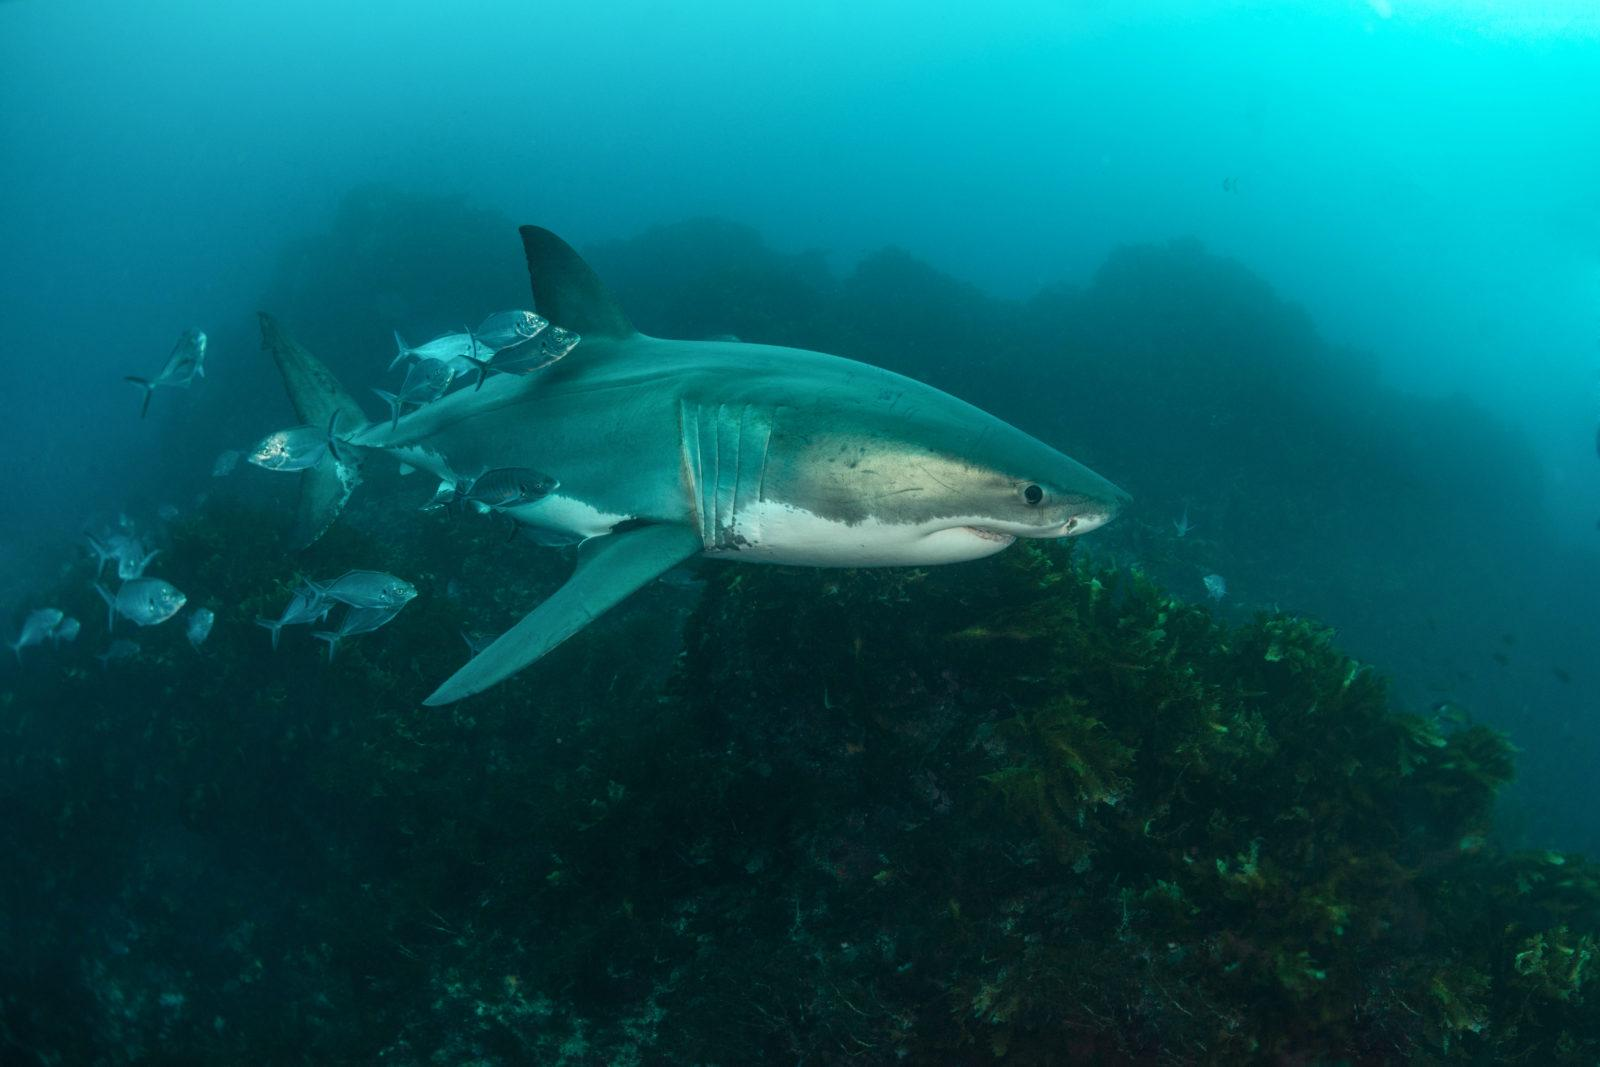 Great White Shark with a shoal of fish